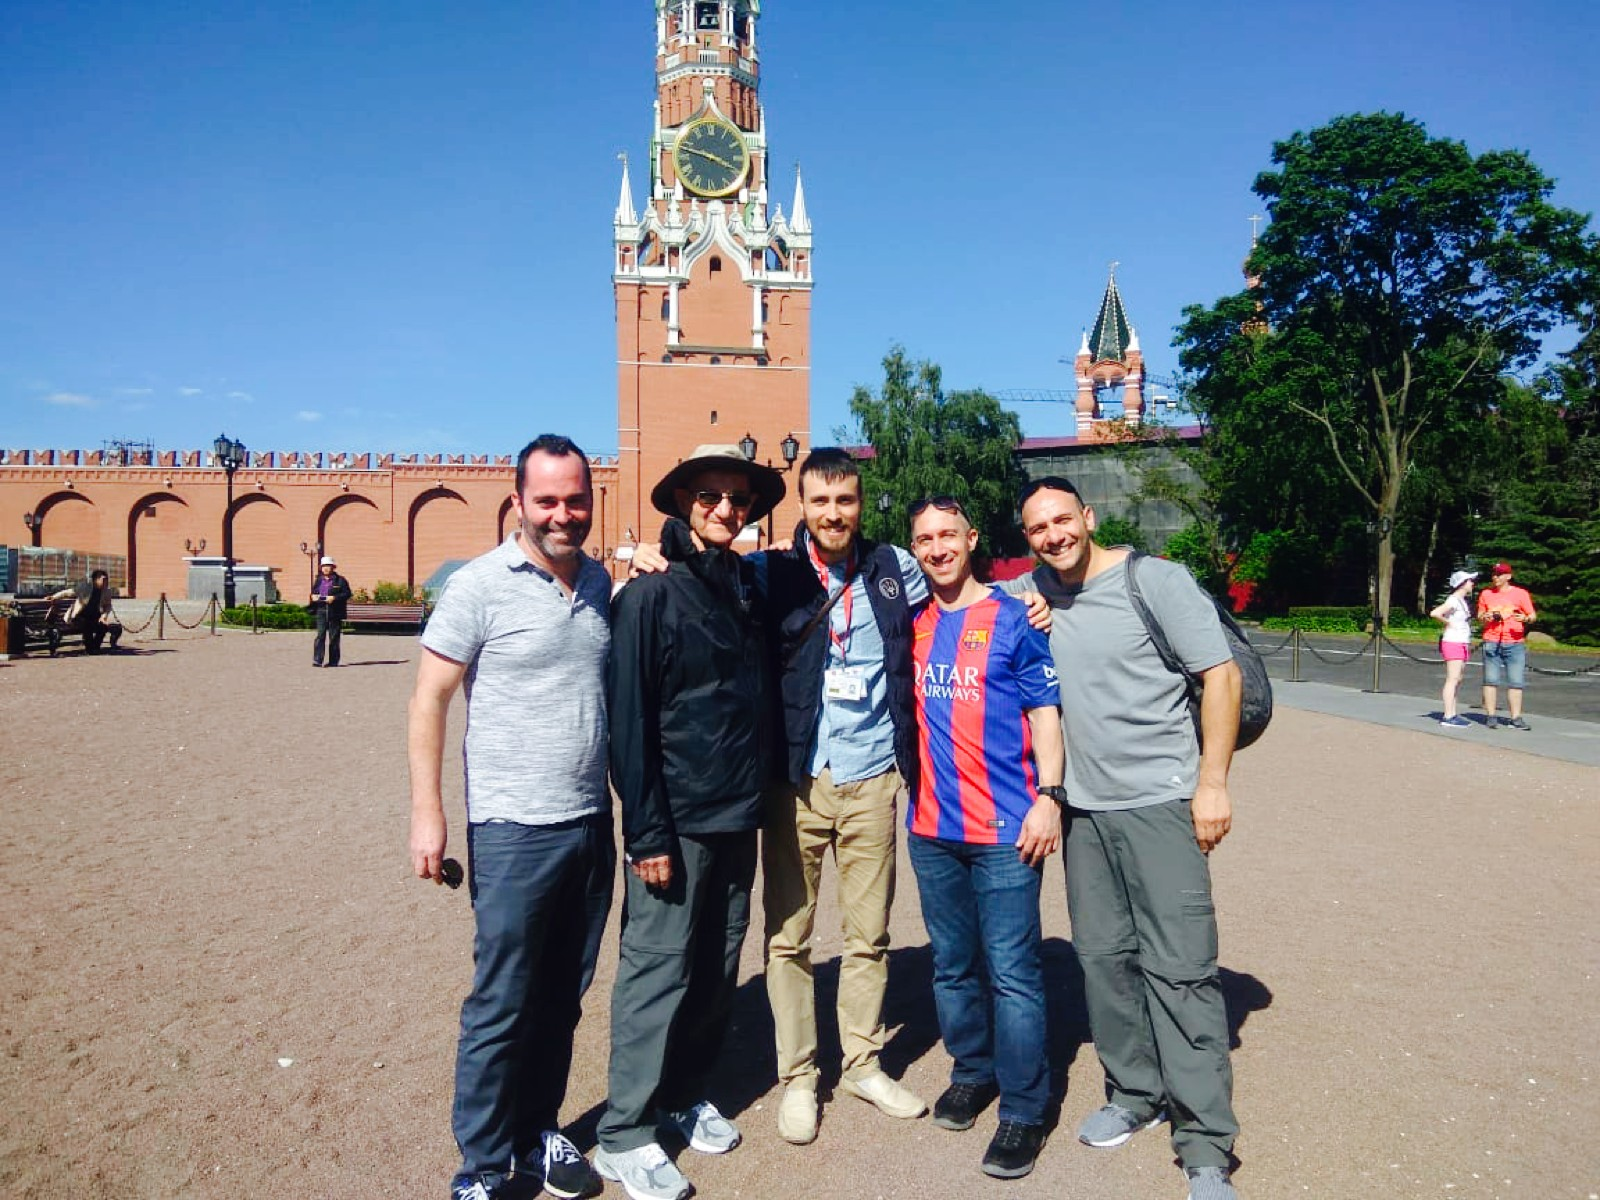 Pradiz' guests from the United States at the Kremlin with guide Viktor during the WC2018